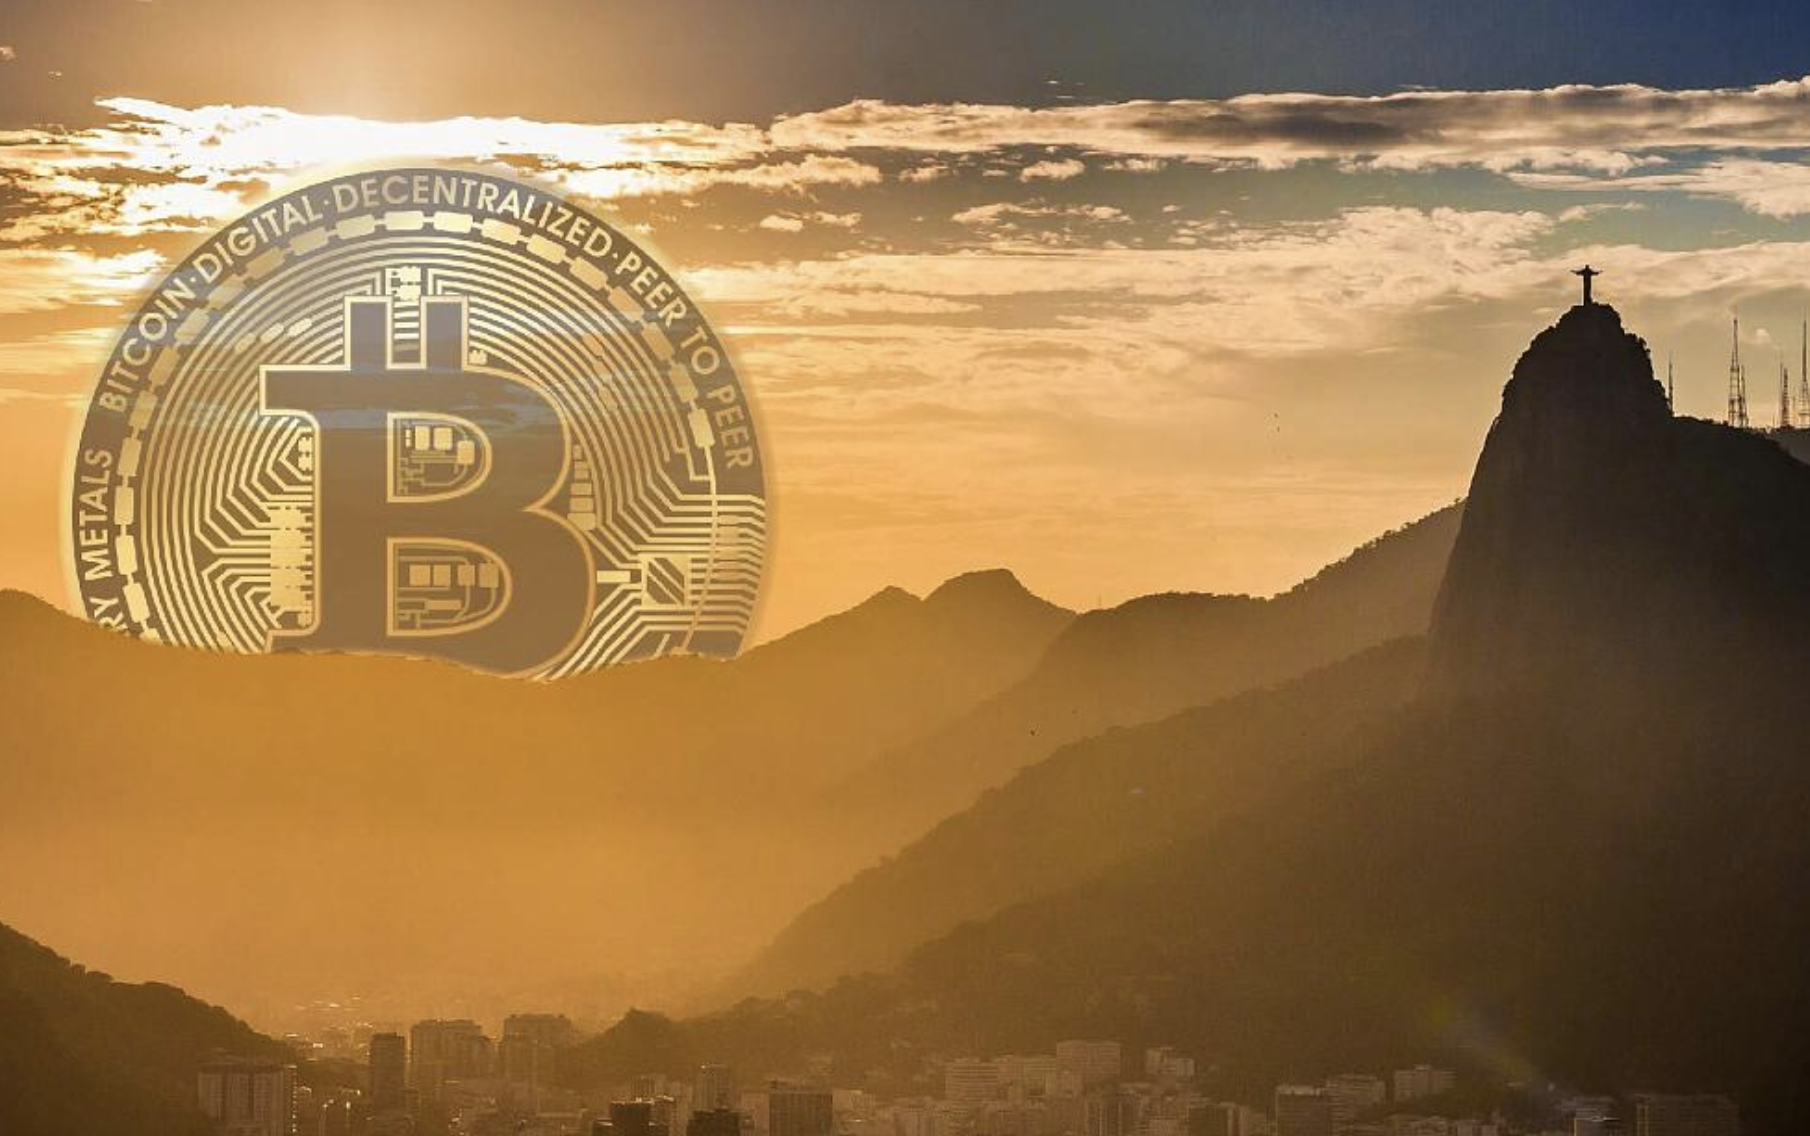 Bitcoin: Which countries could follow El Salvador in making cryptocurrency legal tender?